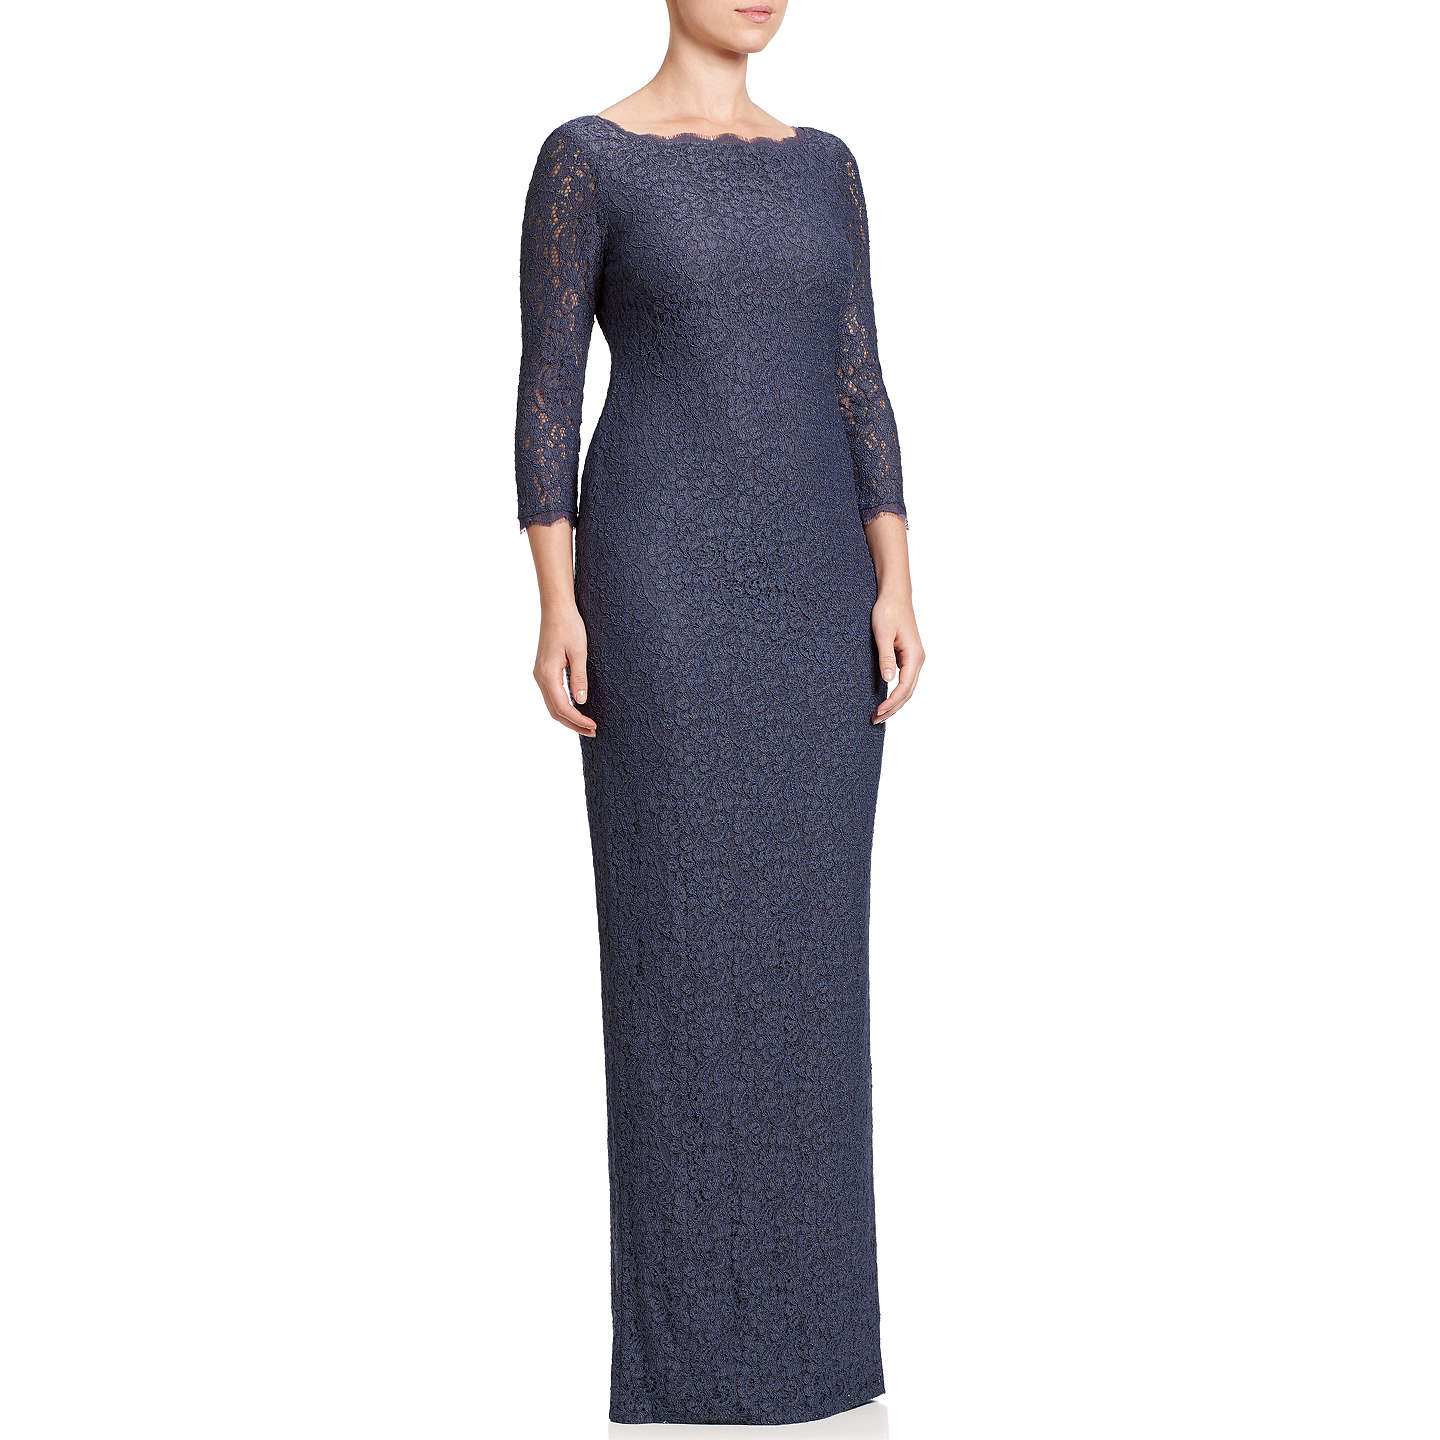 Adrianna Papell Long Sleeve Lace Gown at John Lewis